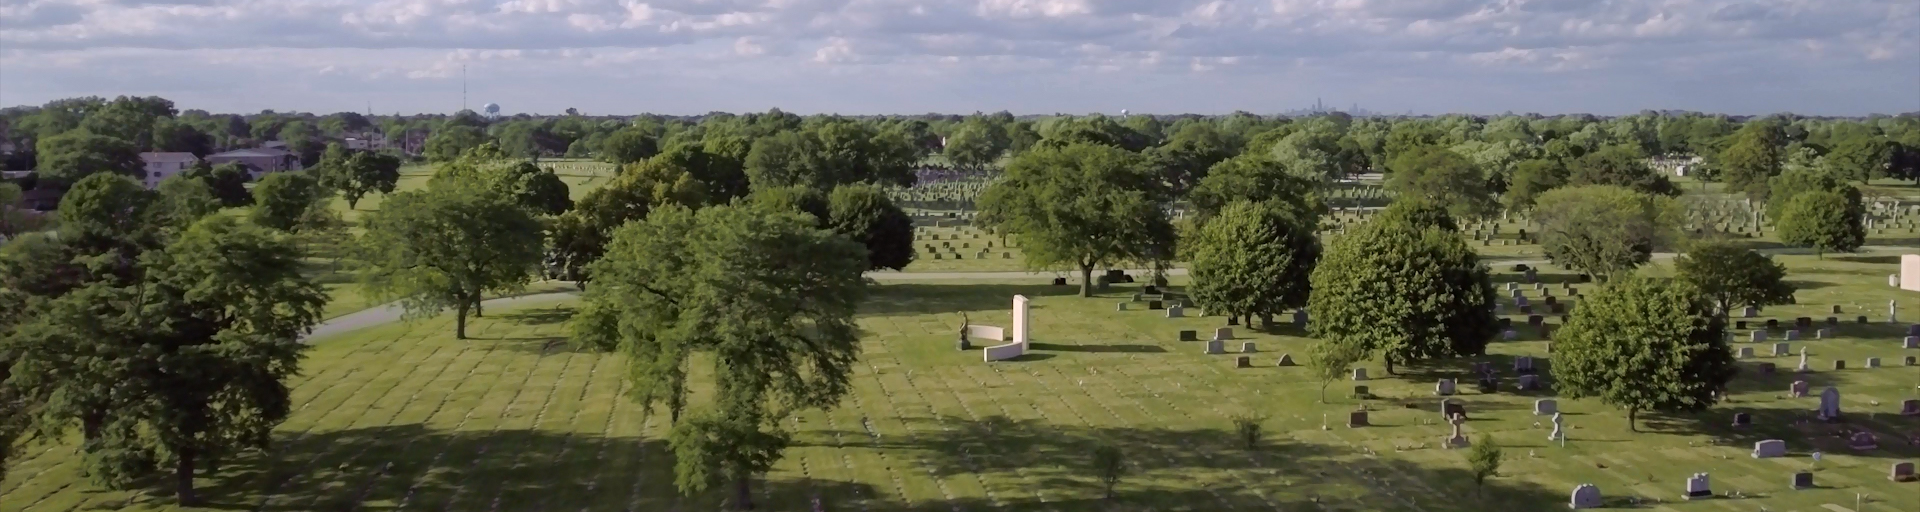 Welcome to the Catholic Cemeteries of the Archdiocese of Chicago